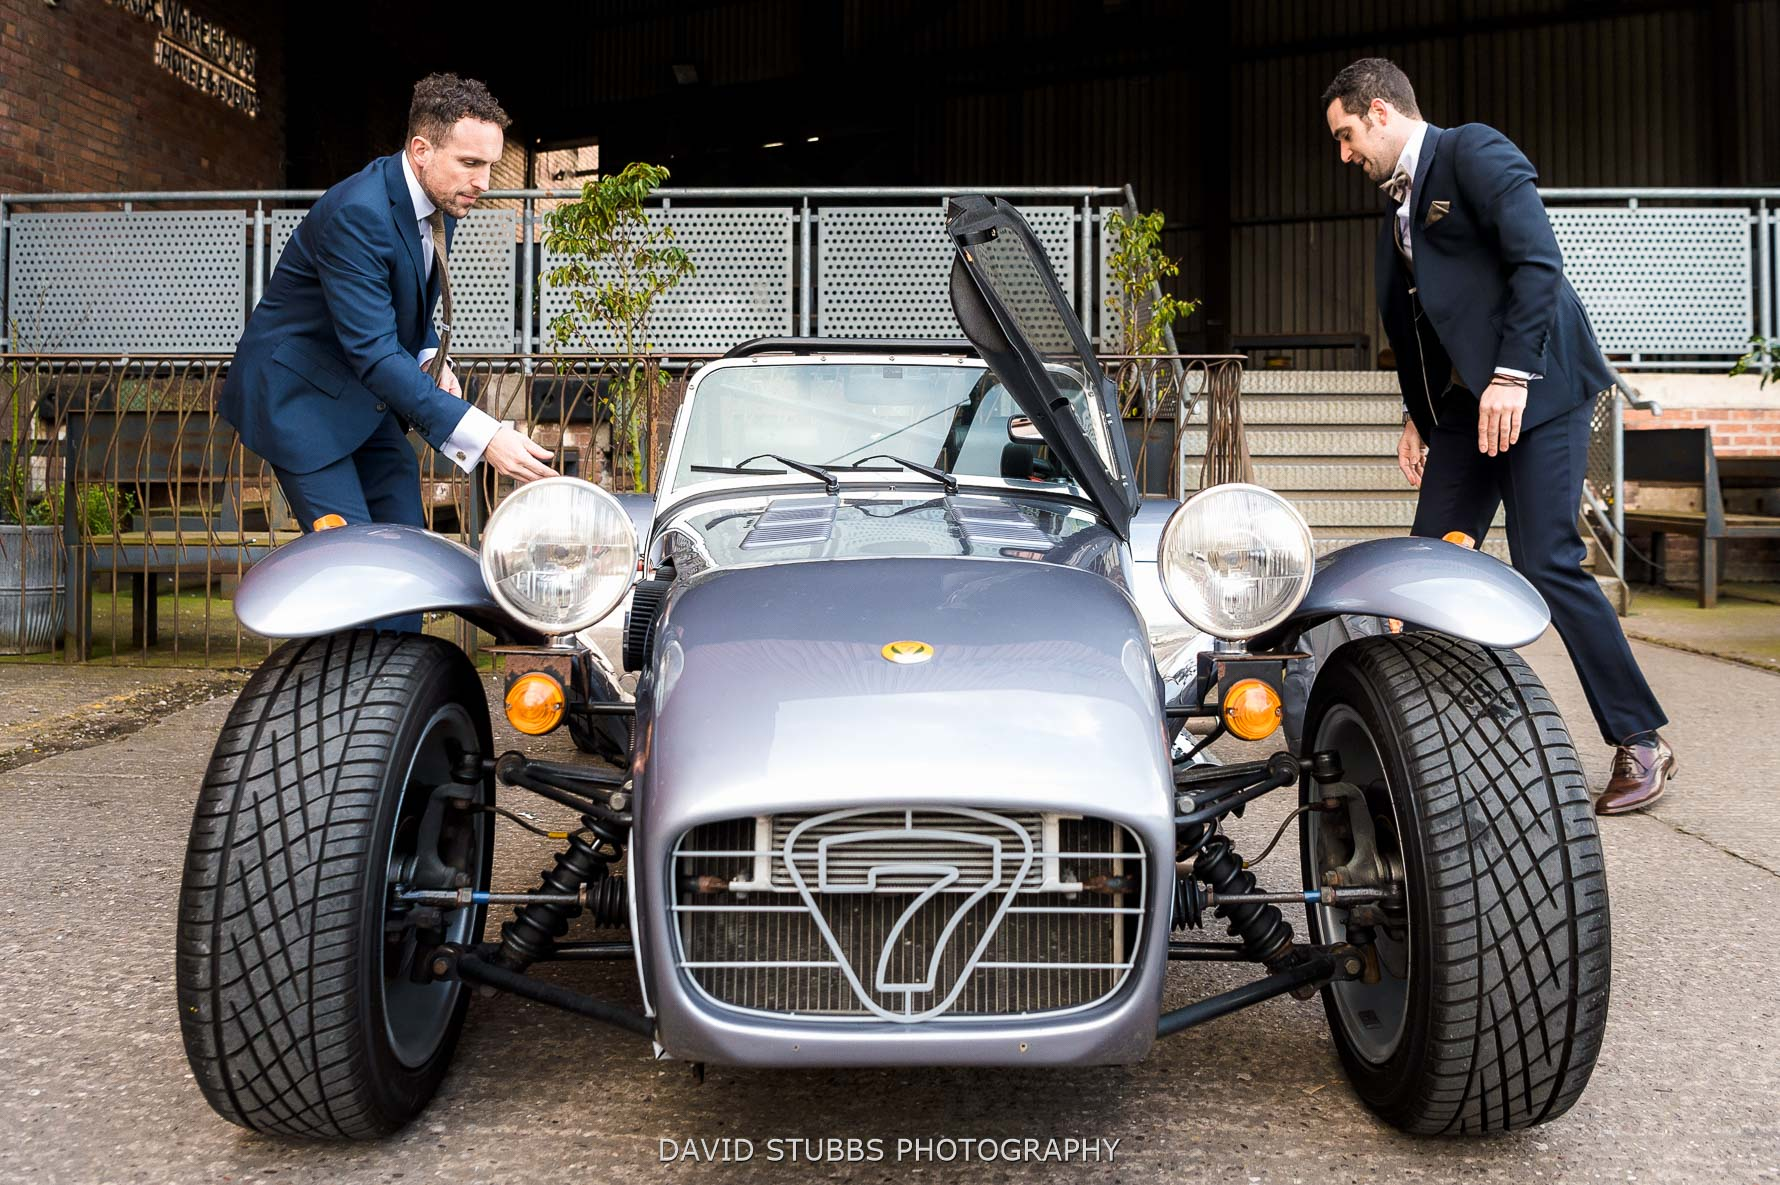 caterham at wedding